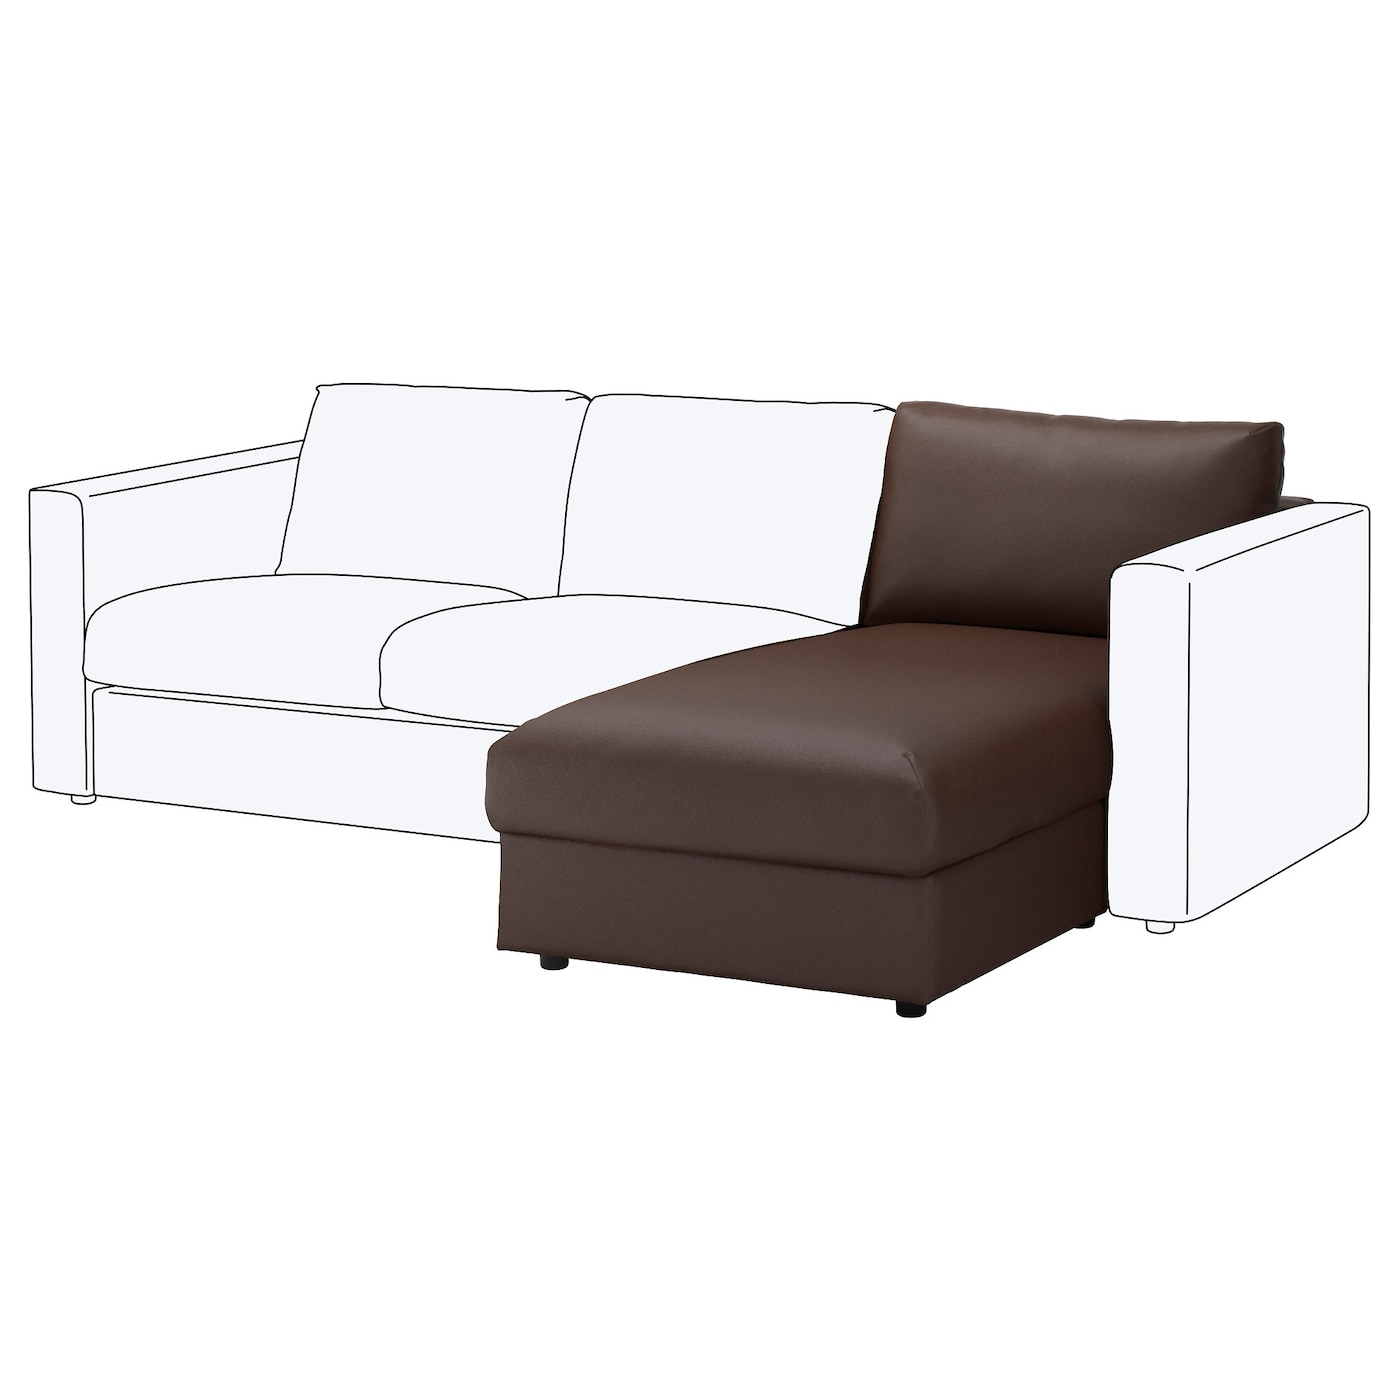 ikea chaise lounge sofa kivik chaise longue grann bomstad dark brown ikea thesofa. Black Bedroom Furniture Sets. Home Design Ideas